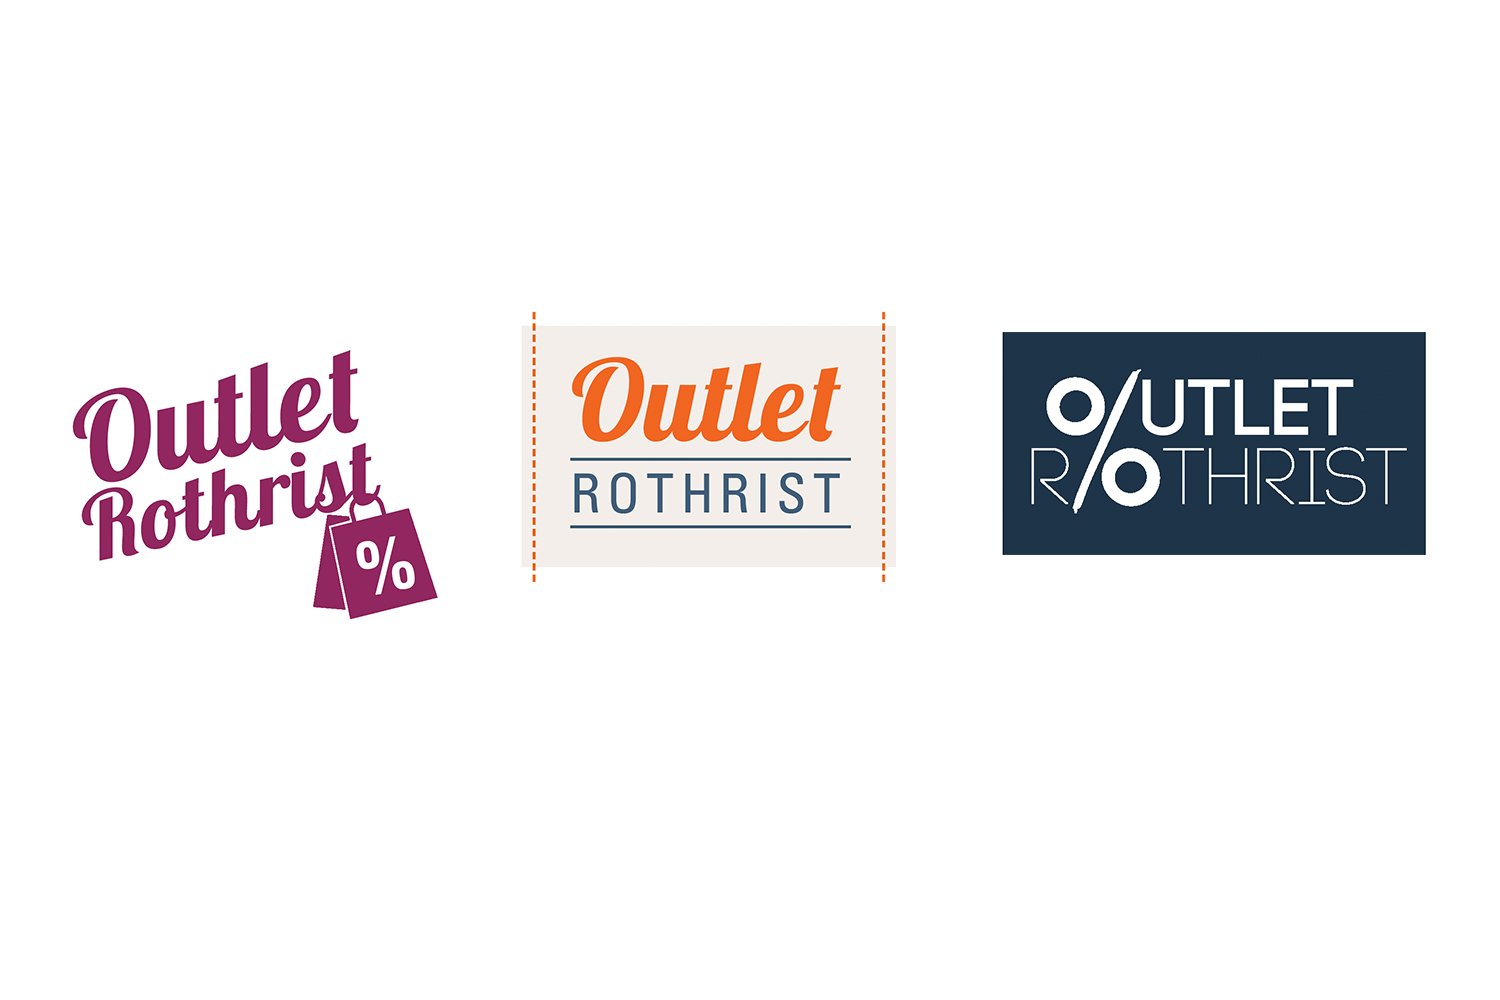 portfolio-graphic-design-logo-outlet-rothrist-2.jpg